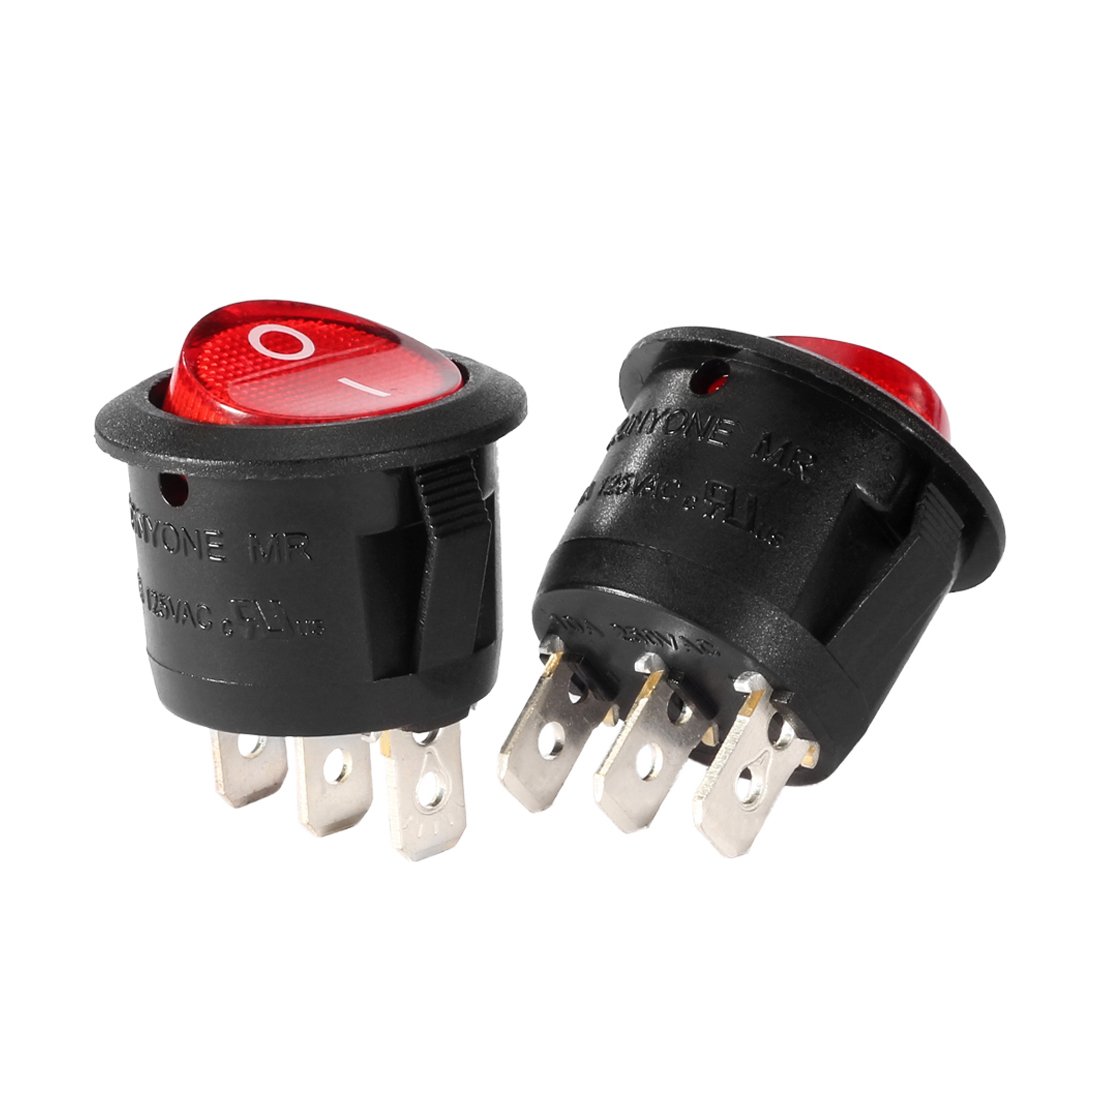 5Pcs Lamp 3 Terminal SPST 2 Position Round Button Rocker Switch UL Listed